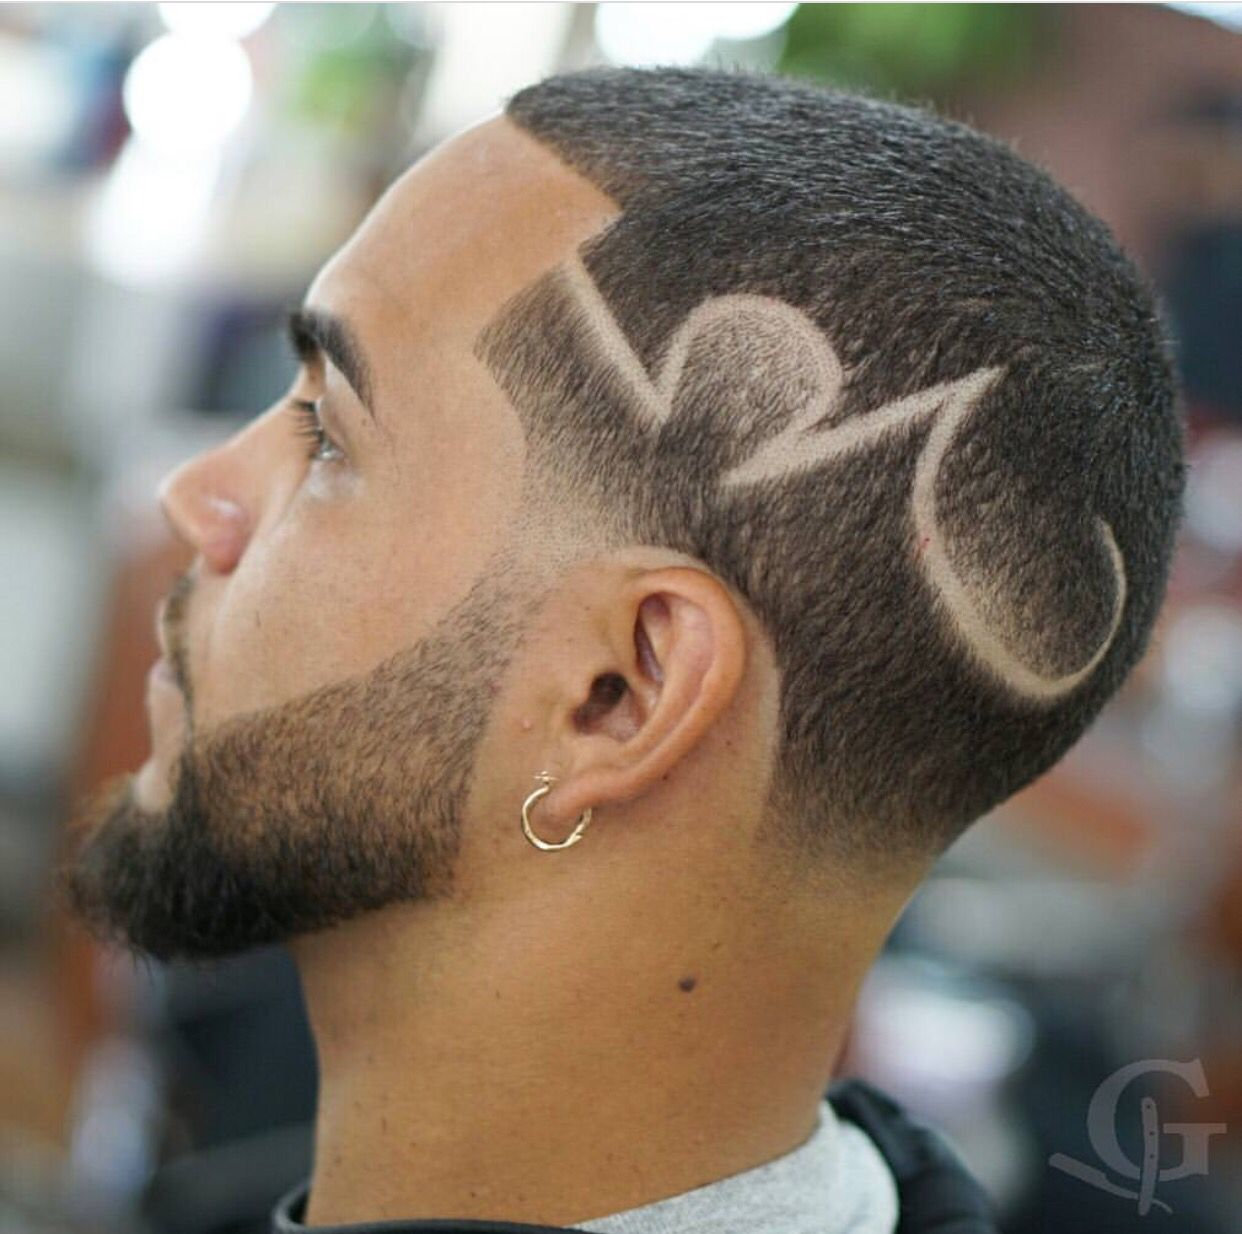 pin by tonyd2faded on barbering designs in 2019 | hair cuts